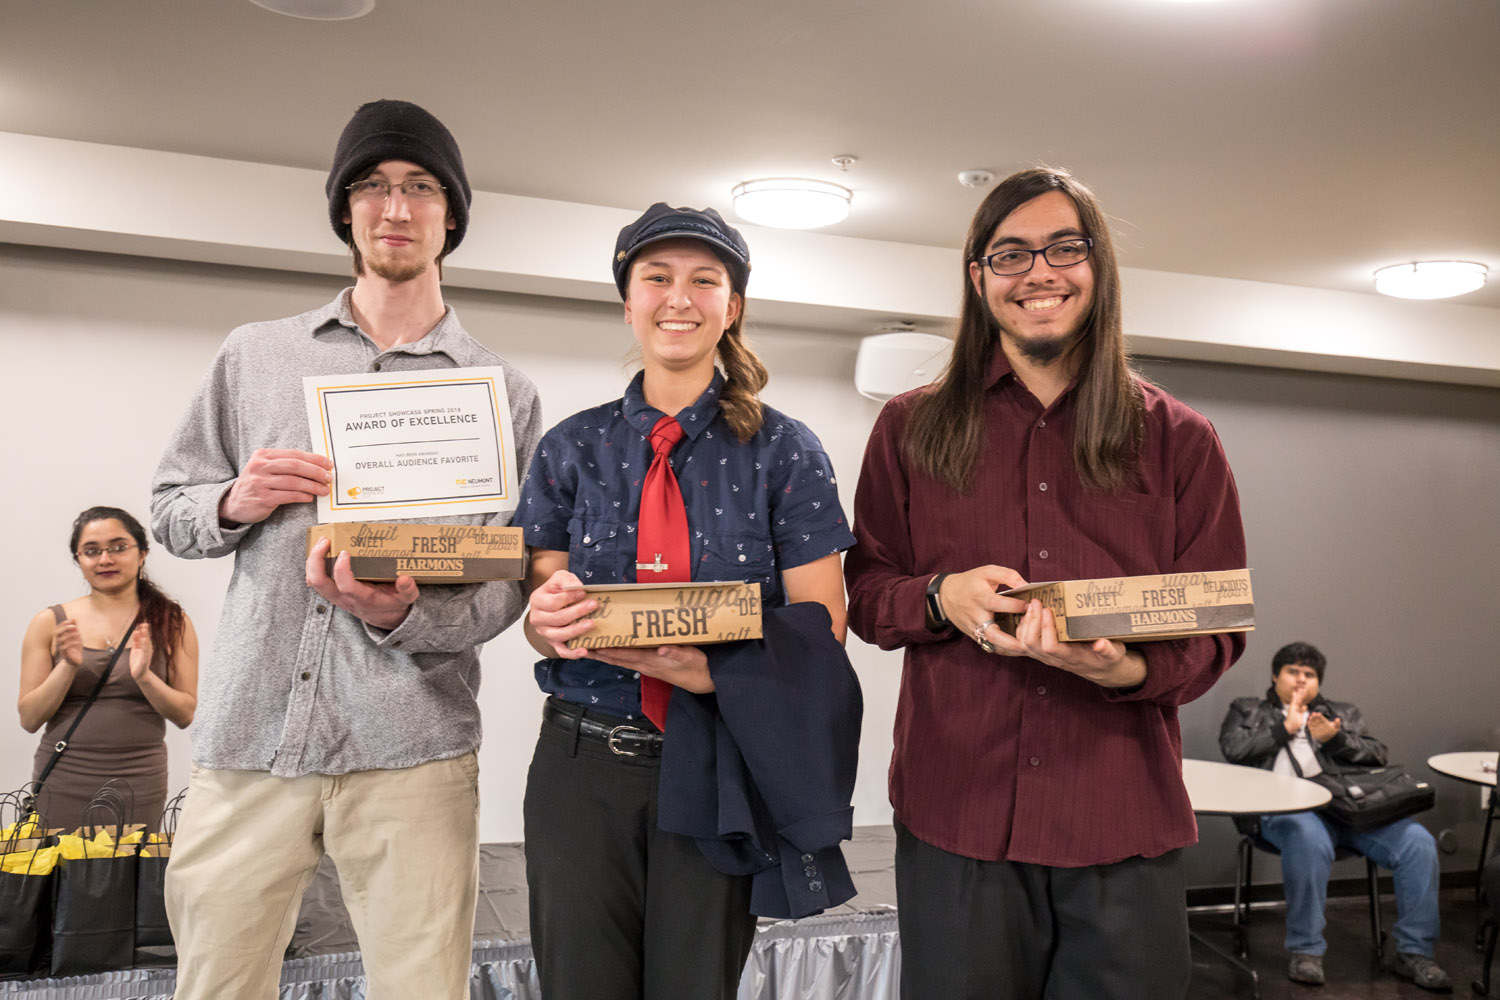 """The DnD Cartographer"" team accepts their pies and awards after winning the overall audience favorite for their tool."